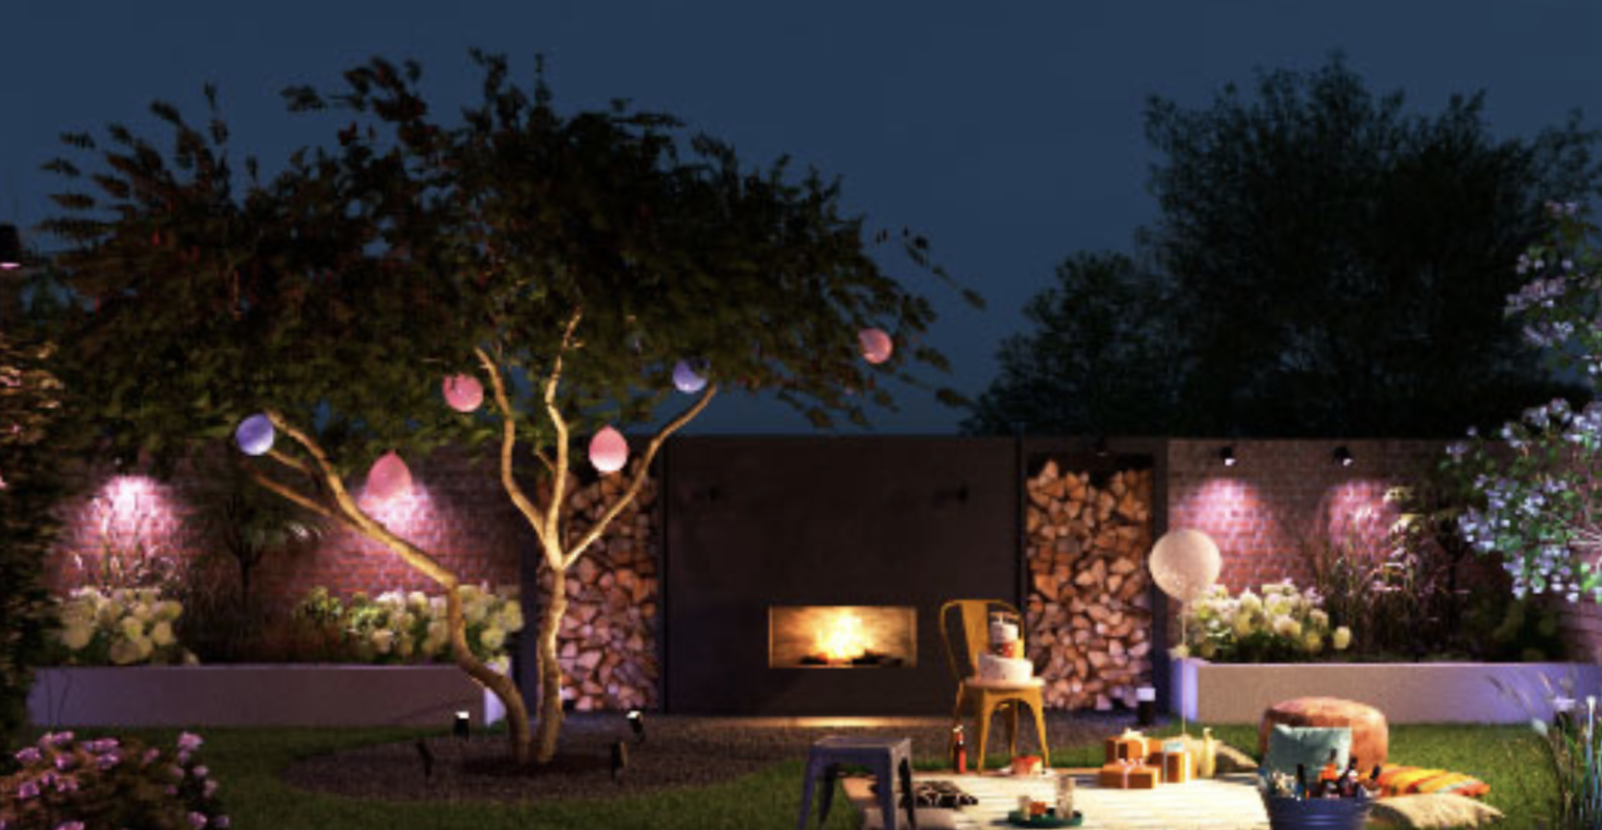 Philips Hue Smart Lighting Goes Outdoors And The Results Are Magical Real Homes